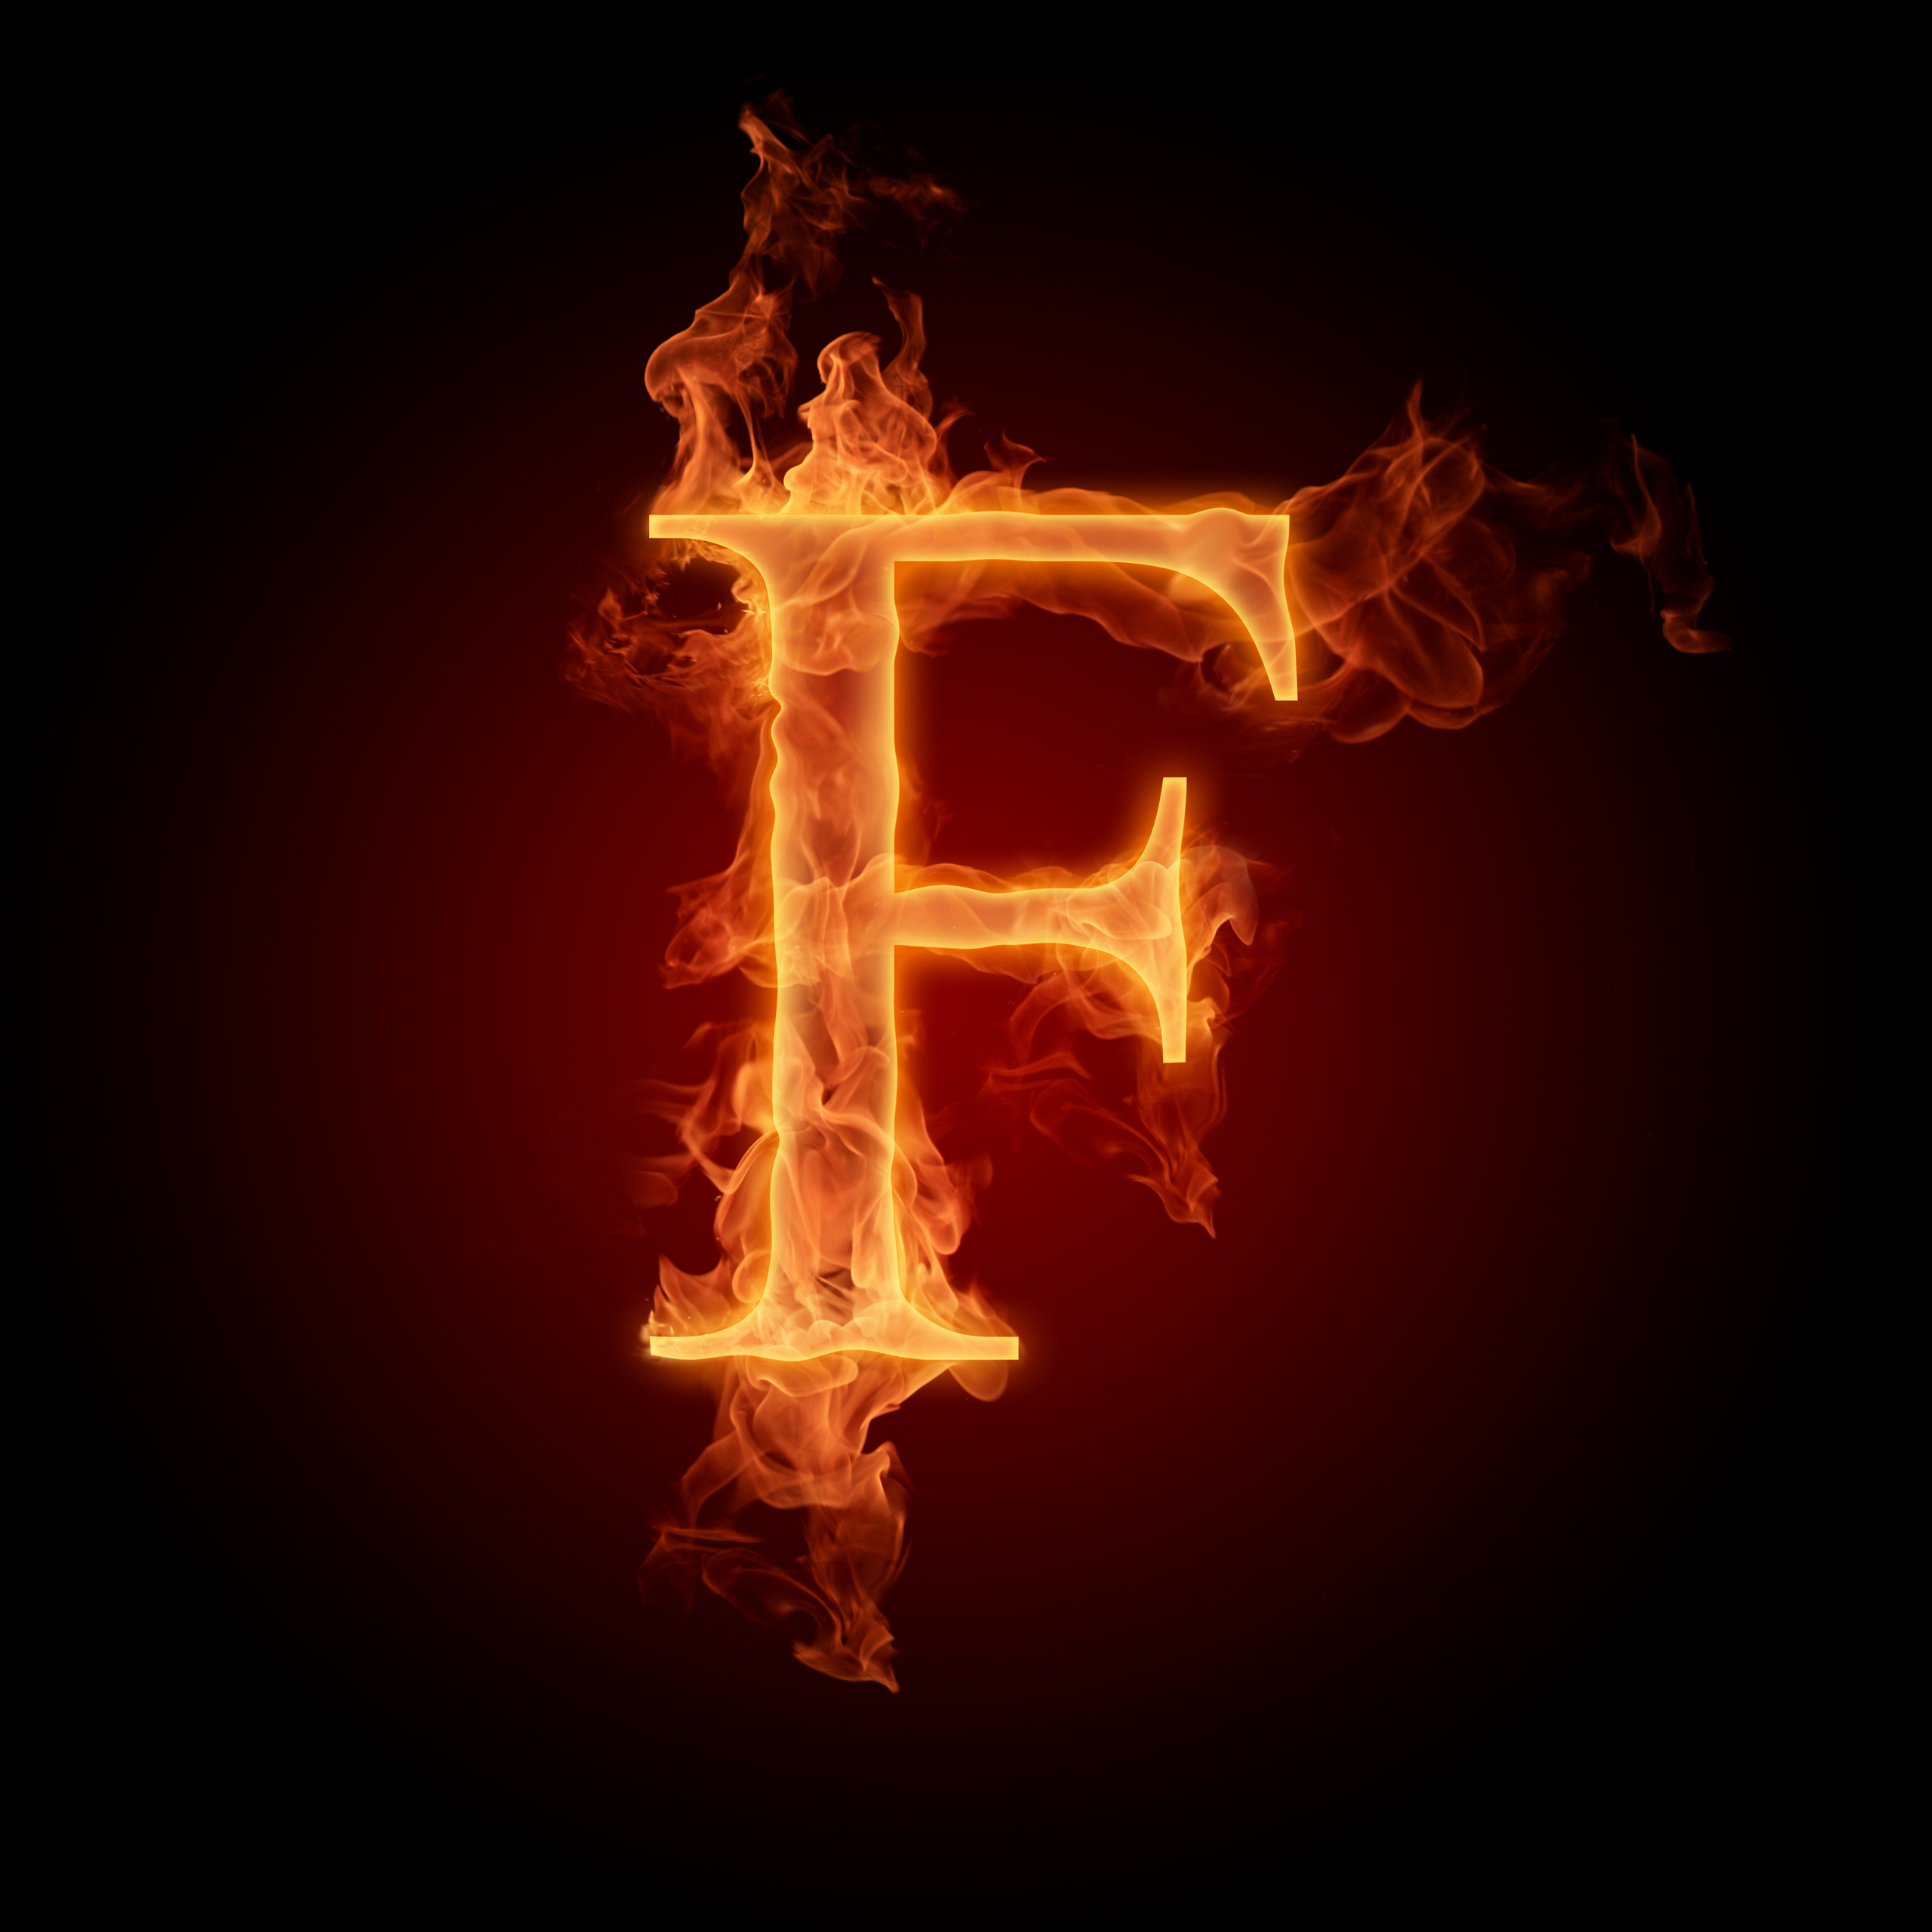 The Letter F images The letter F HD wallpaper and background